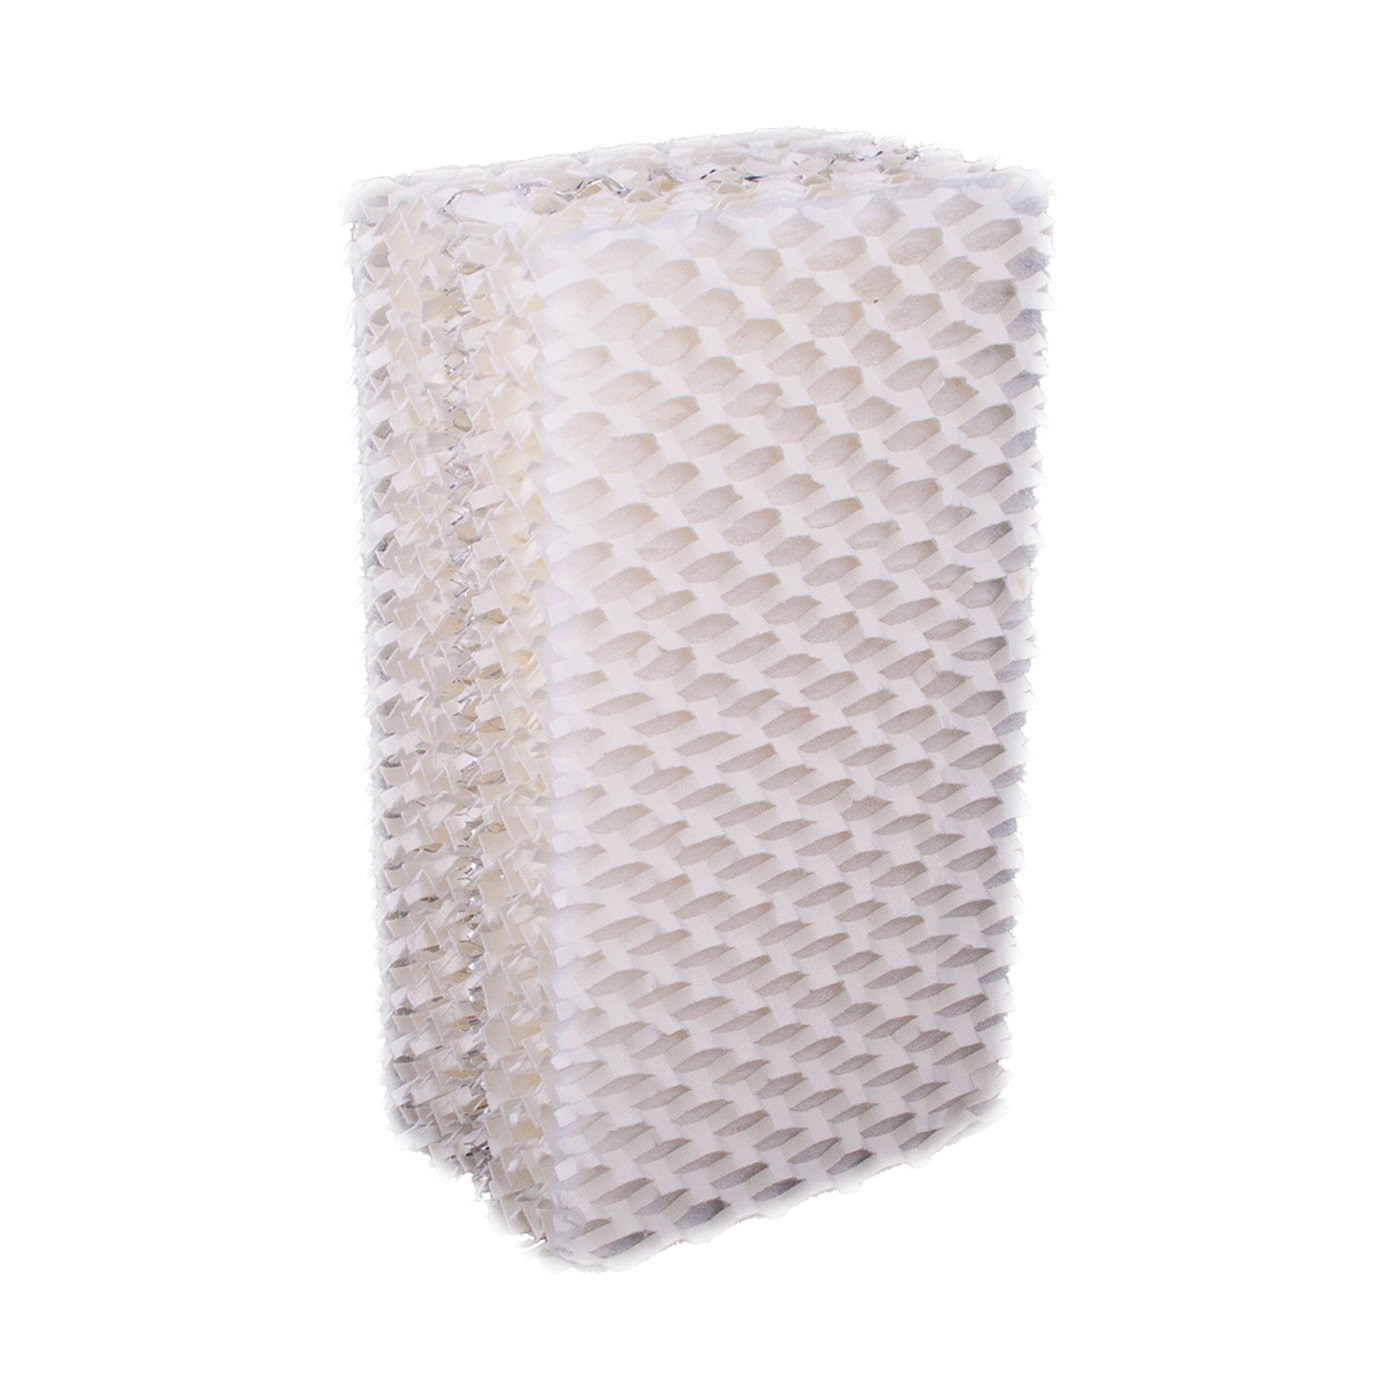 Picture of BestAir ALL-3 Wick Filter, 44 in L, 4-1/2 in W, White, For: Essickair Emerson Moistair Humidifier